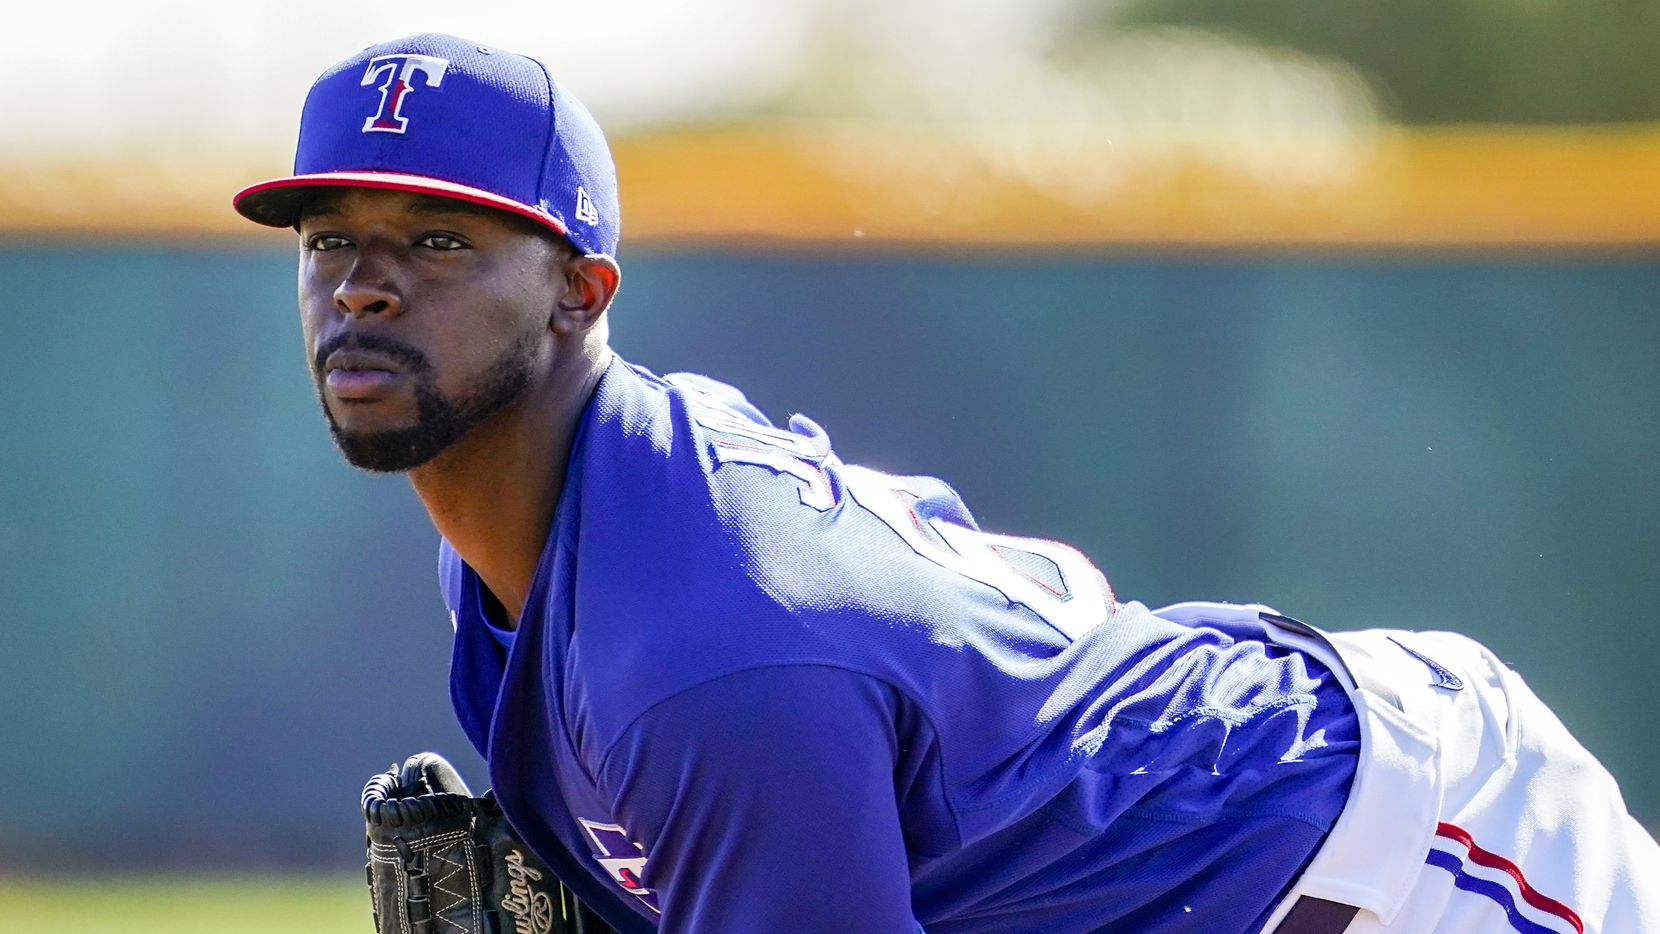 Texas Rangers pitcher James Jones participates in a fielding drill during a spring training workout at the team's training facility on Wednesday, Feb. 19, 2020, in Surprise, Ariz.